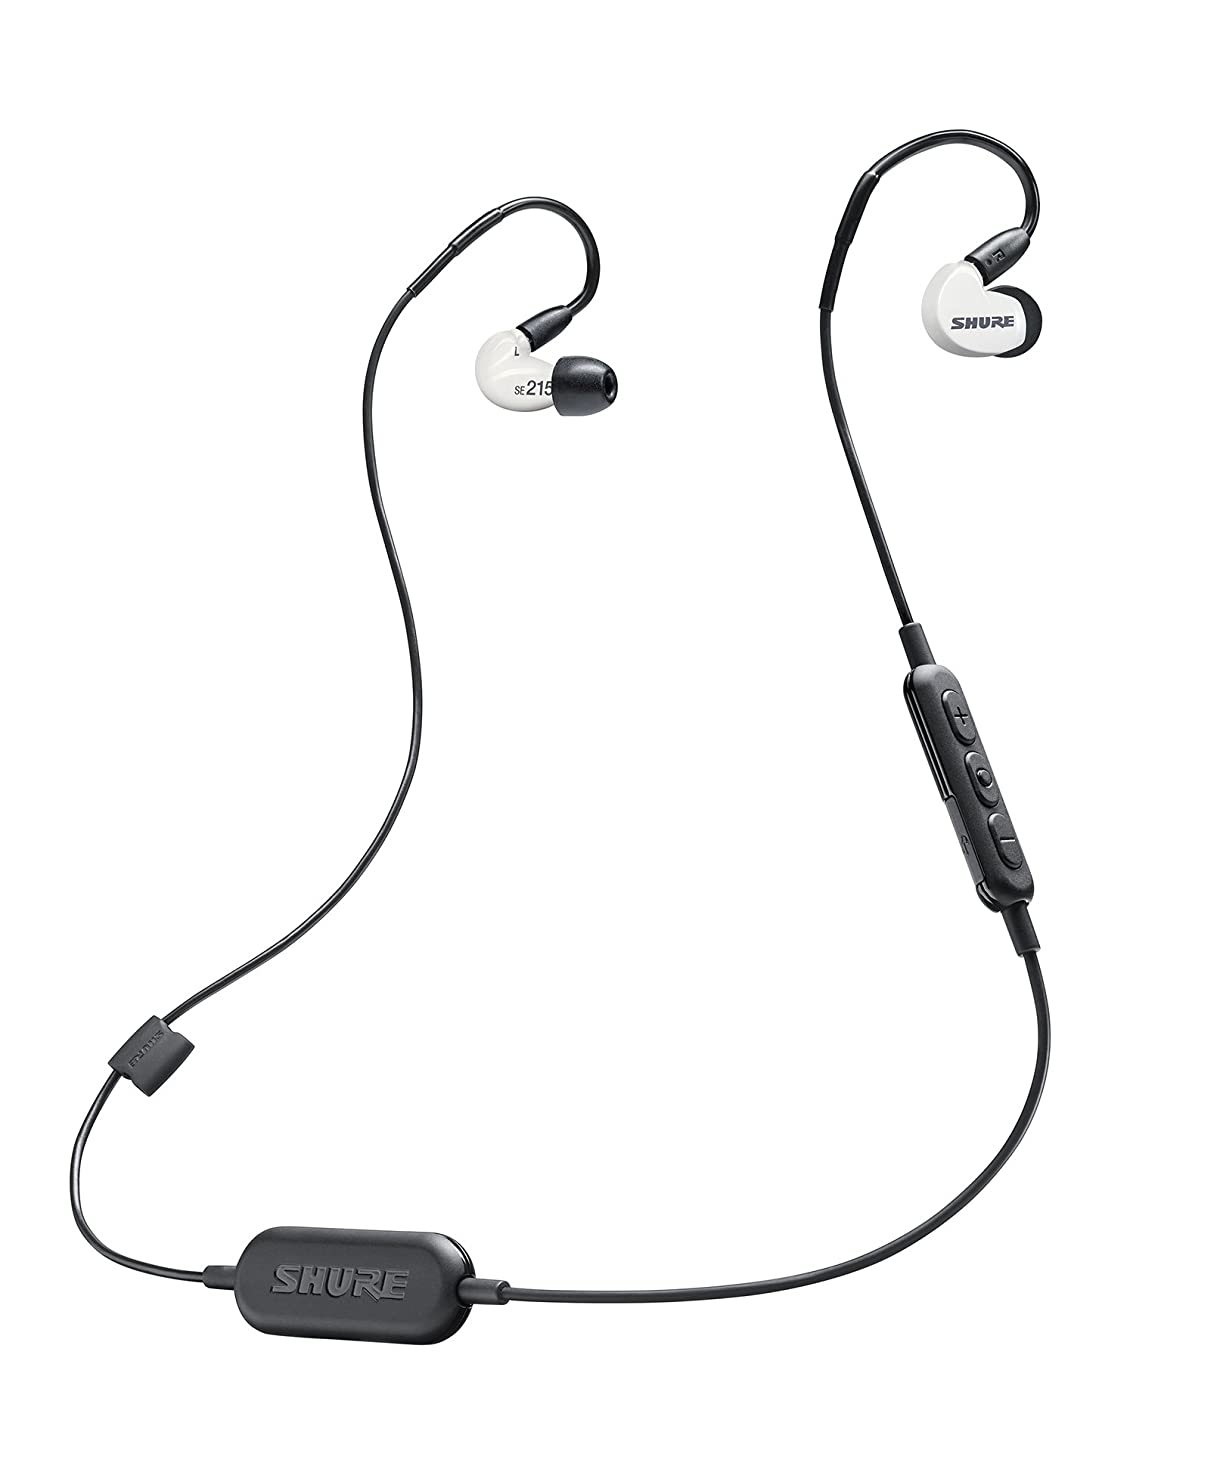 SHURE High Sound Insulation WIRELESS Earphone SE215 Special Edition (WHITE)【Japan Domestic genuine products】